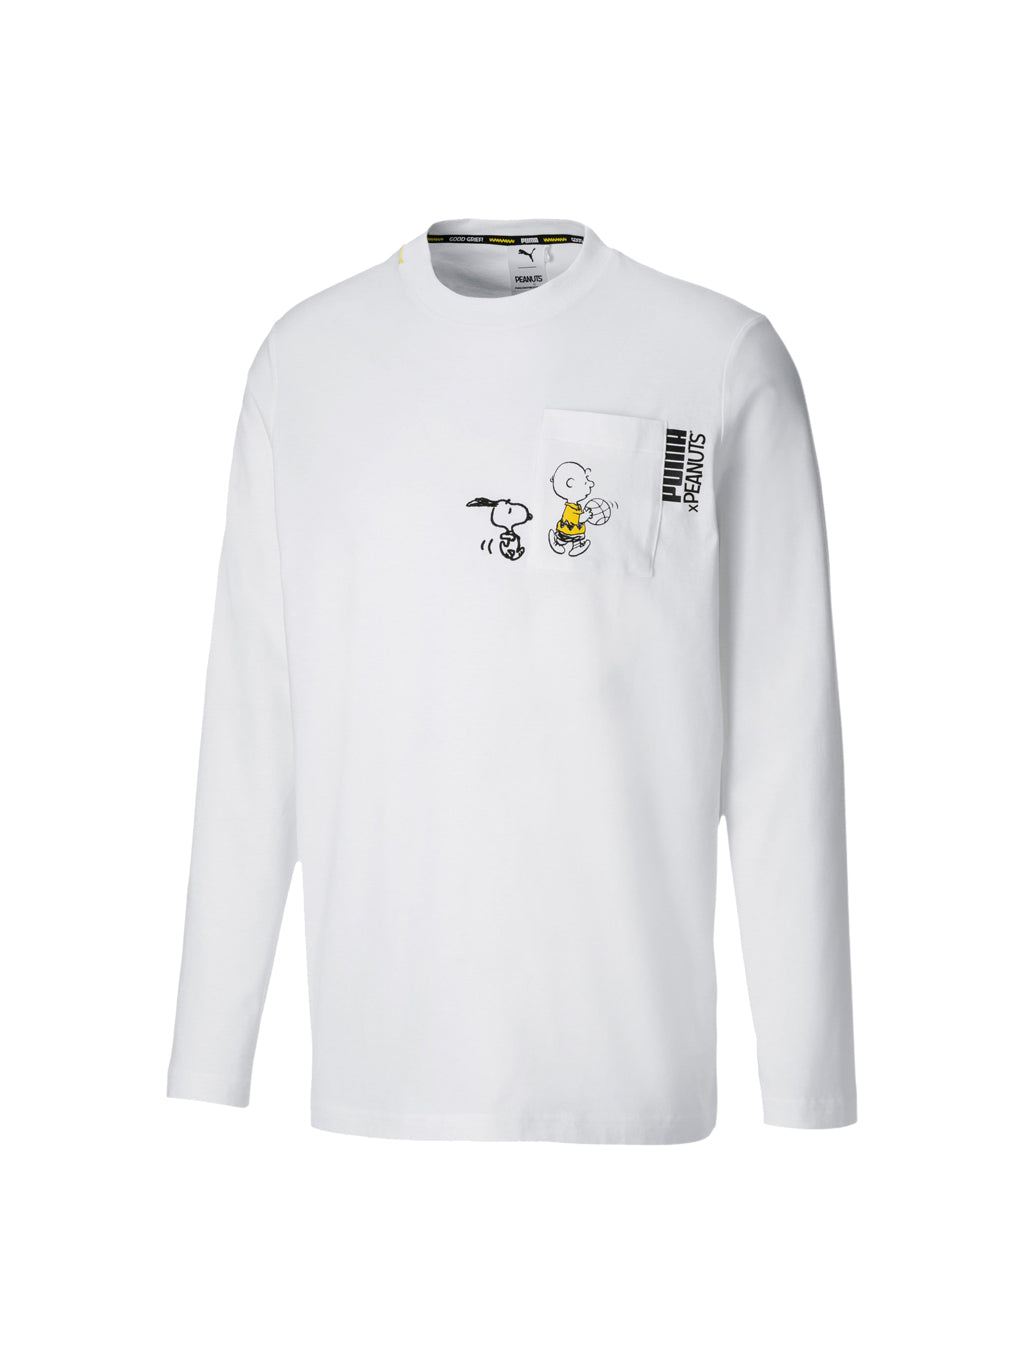 White x Peanuts Long Sleeve T-Shirt